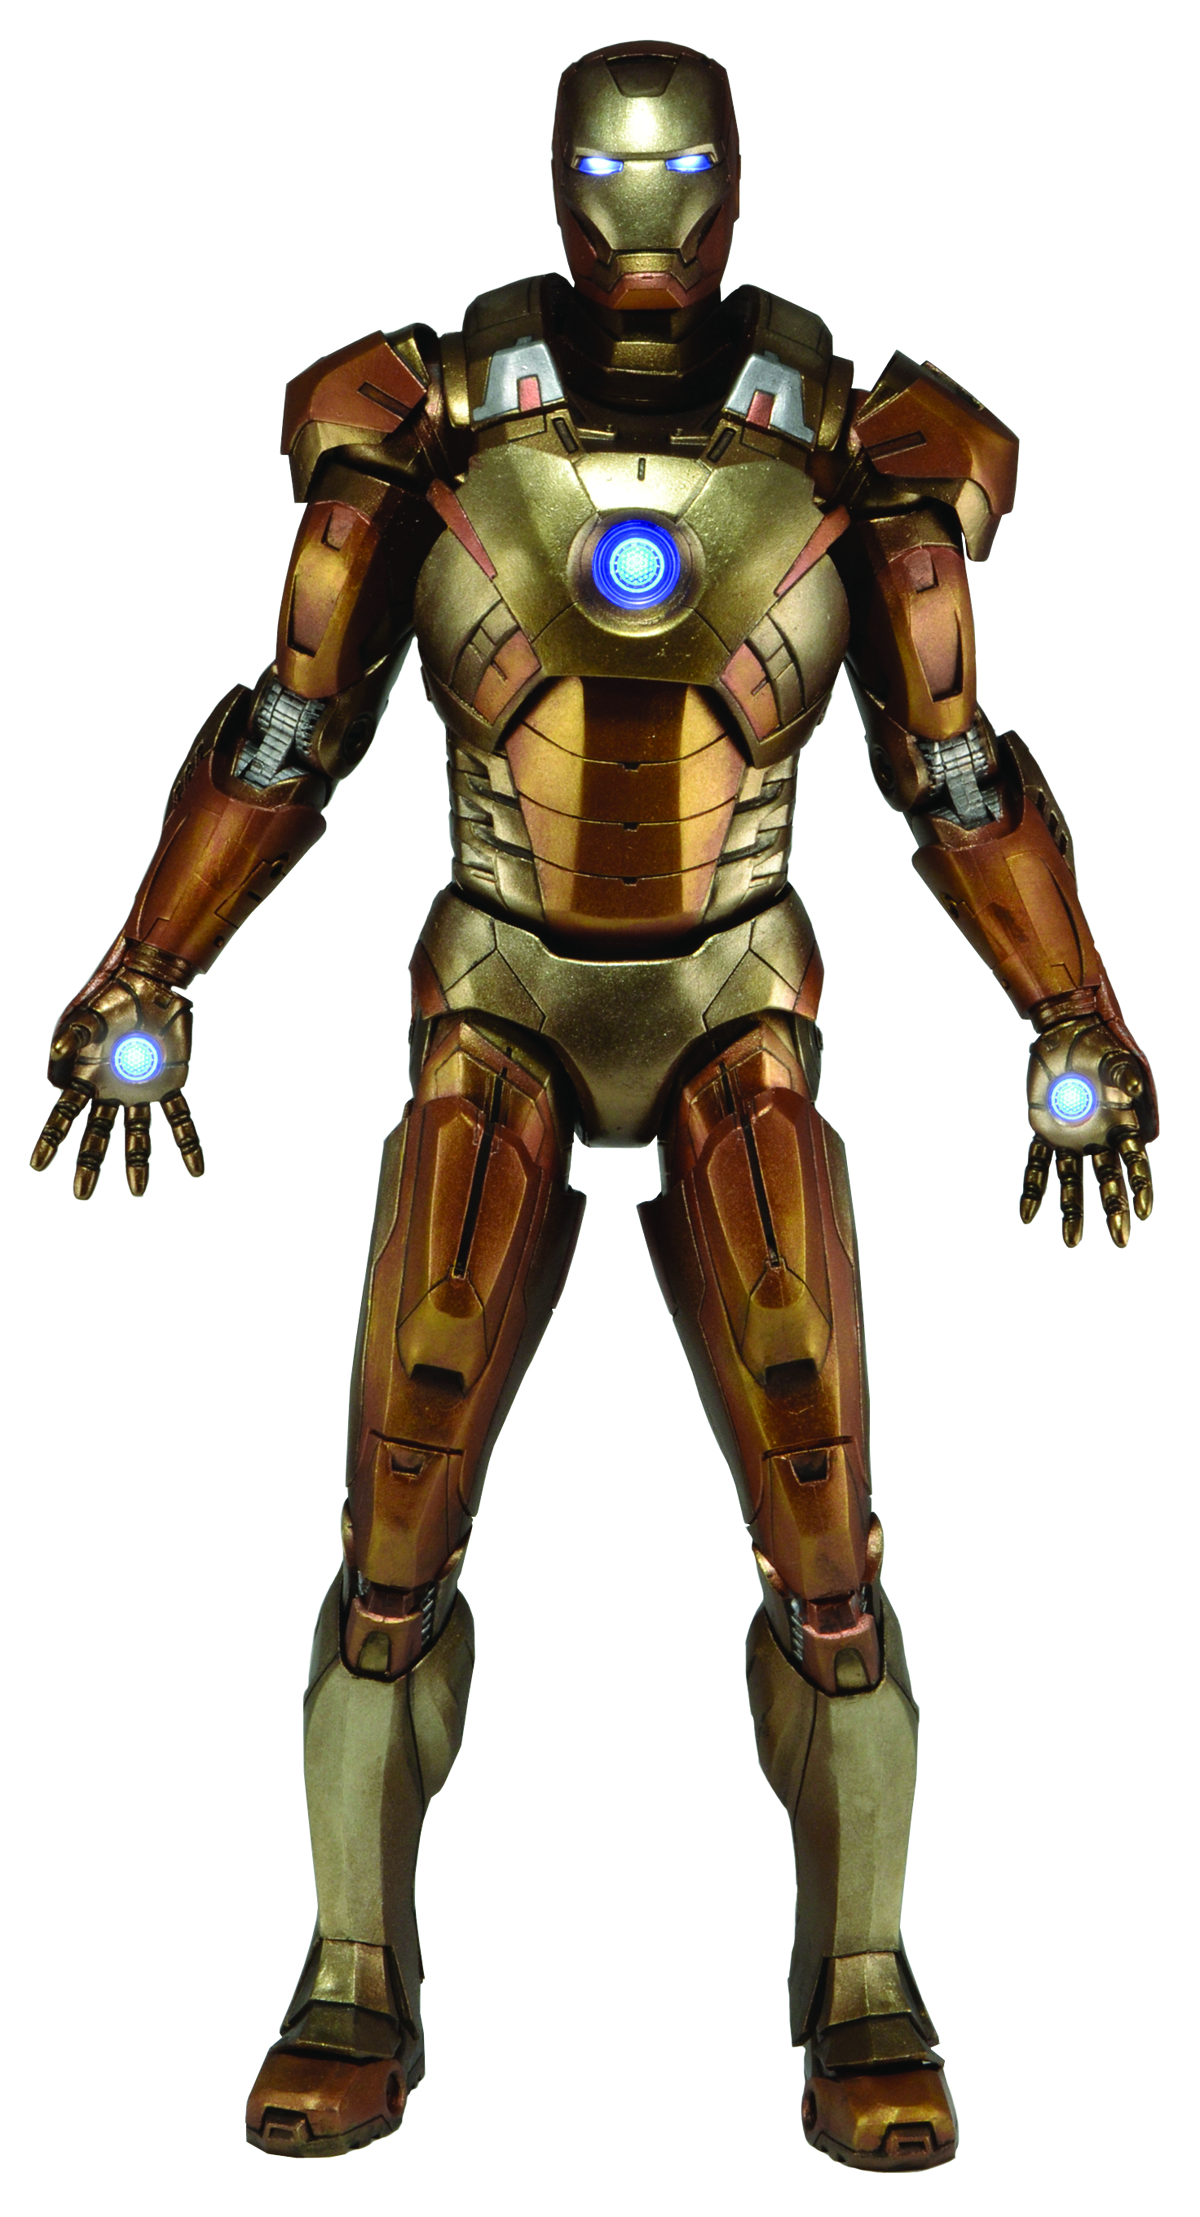 AVENGERS IRON MAN MIDAS VER 1/4 SCALE AF